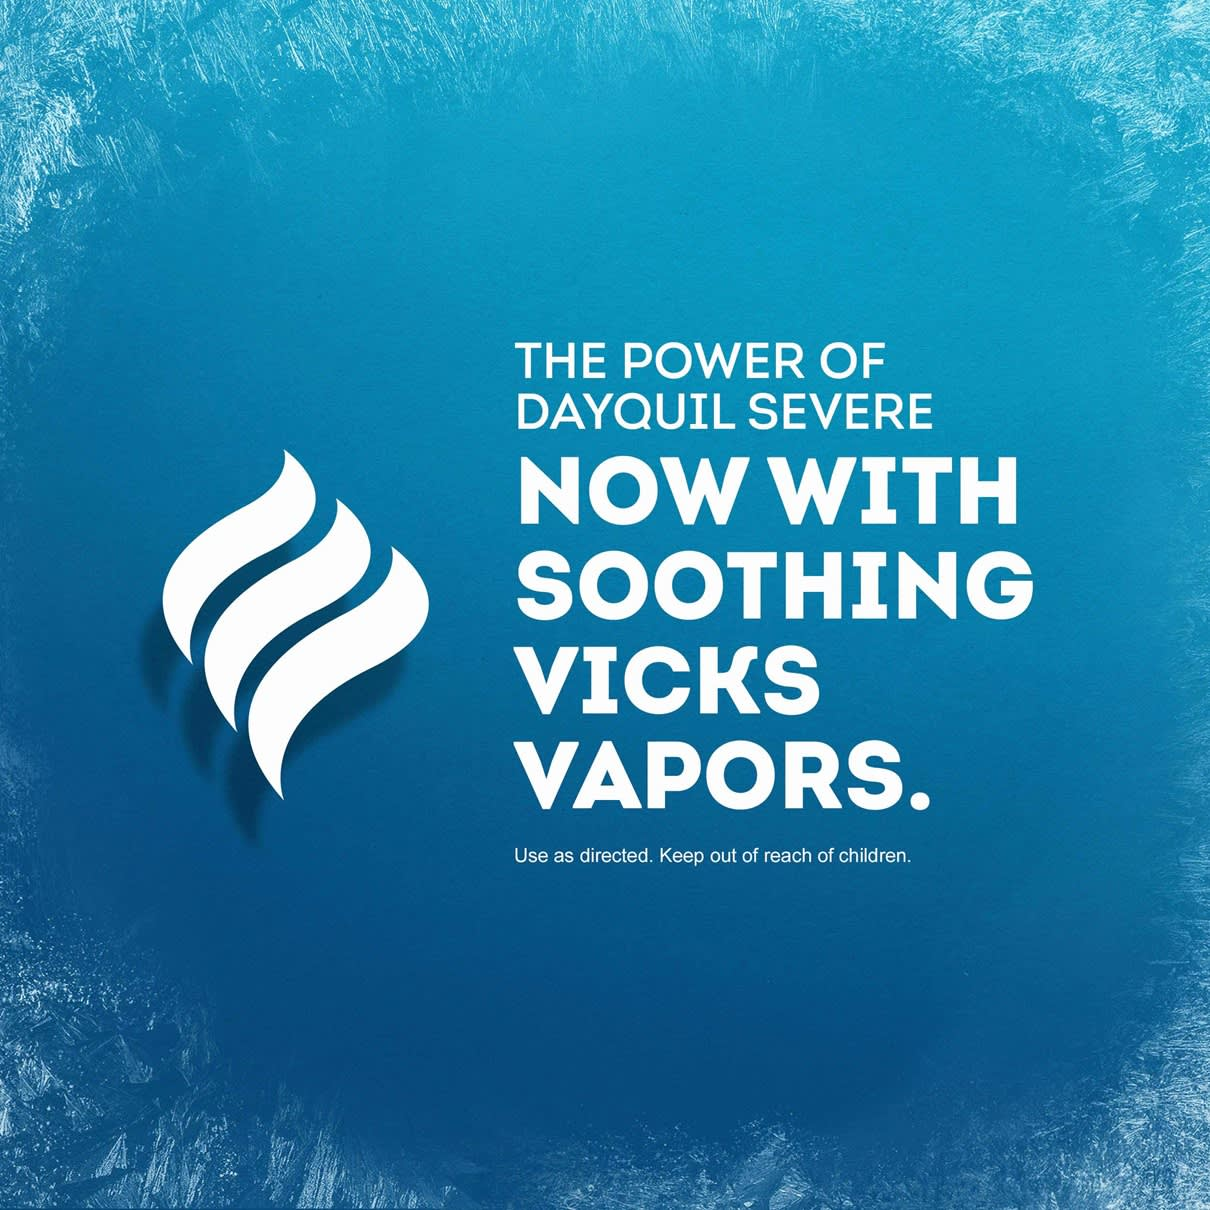 The Power of DayQuil Severe Now with Soothing Vicks Vapors